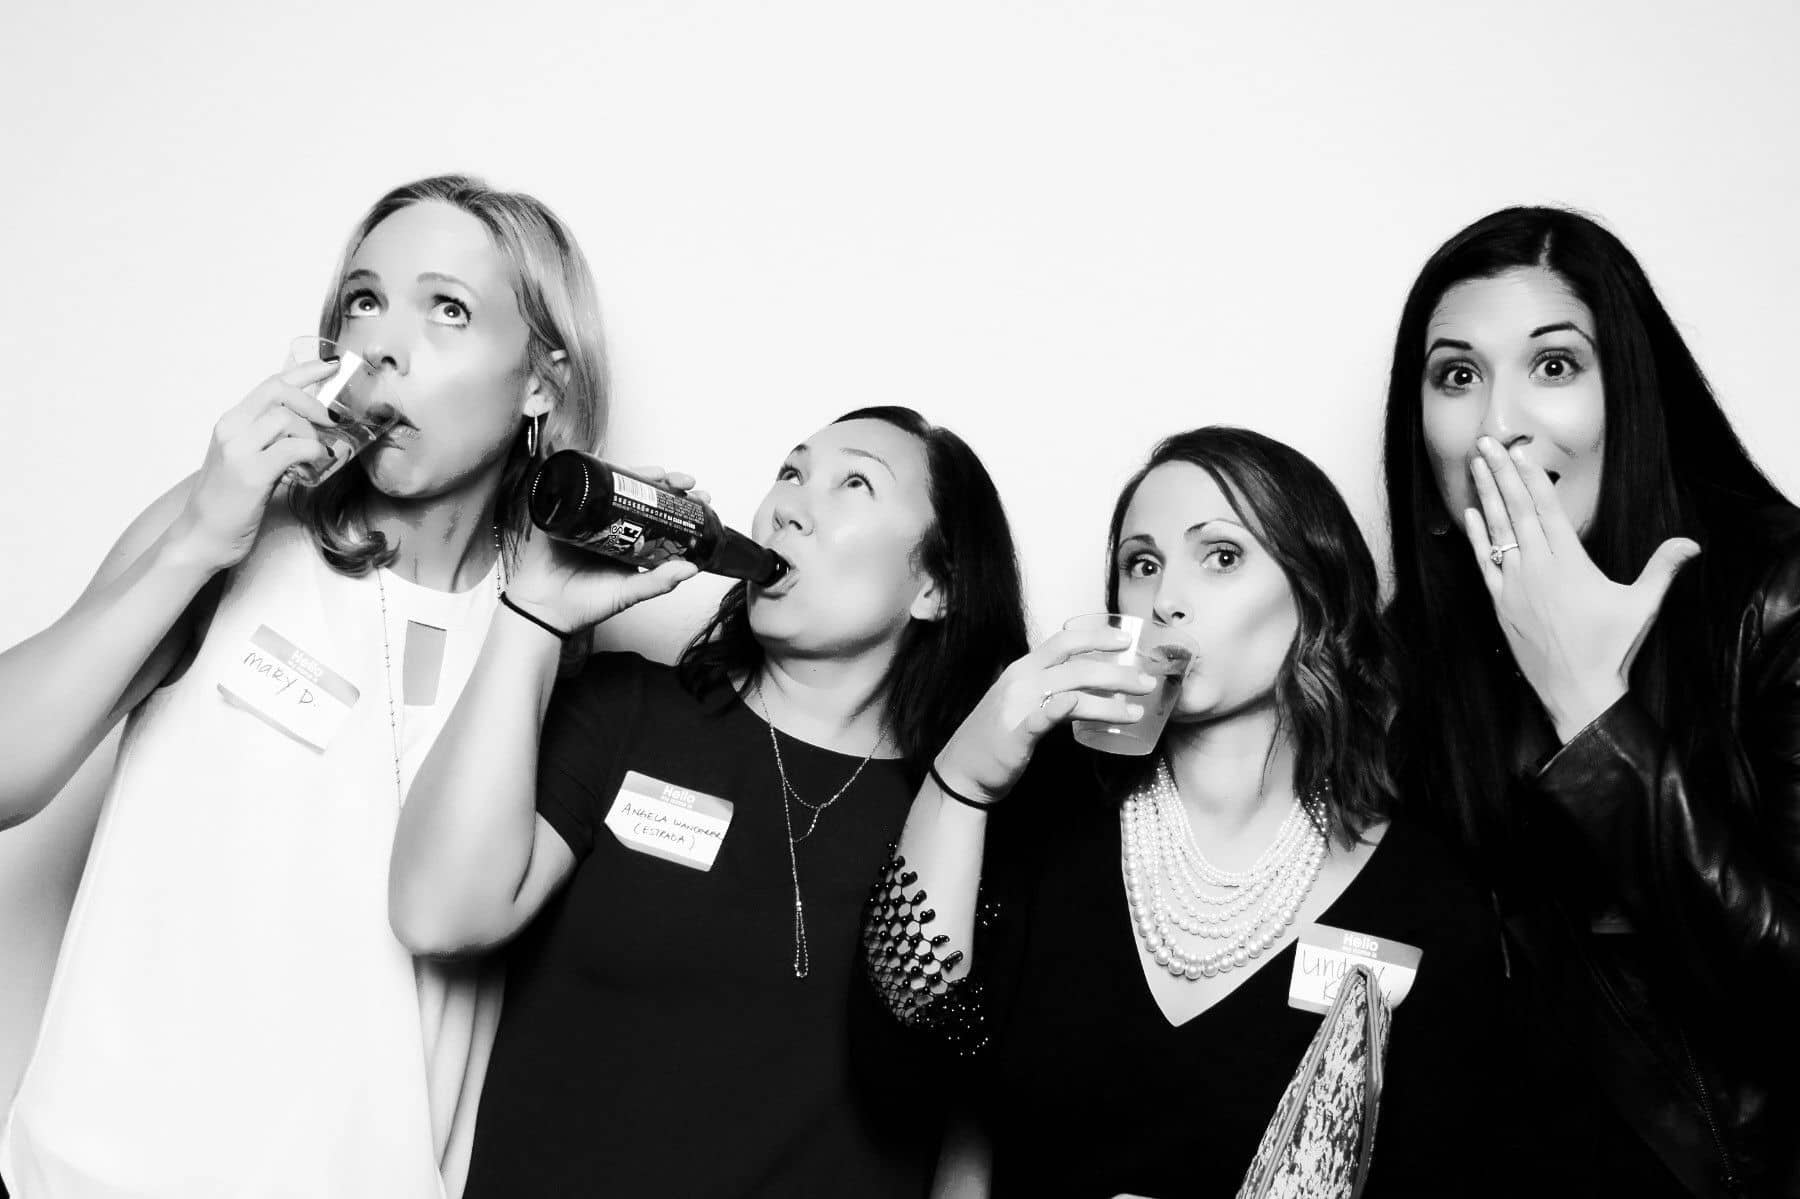 Reunion photo booth experience